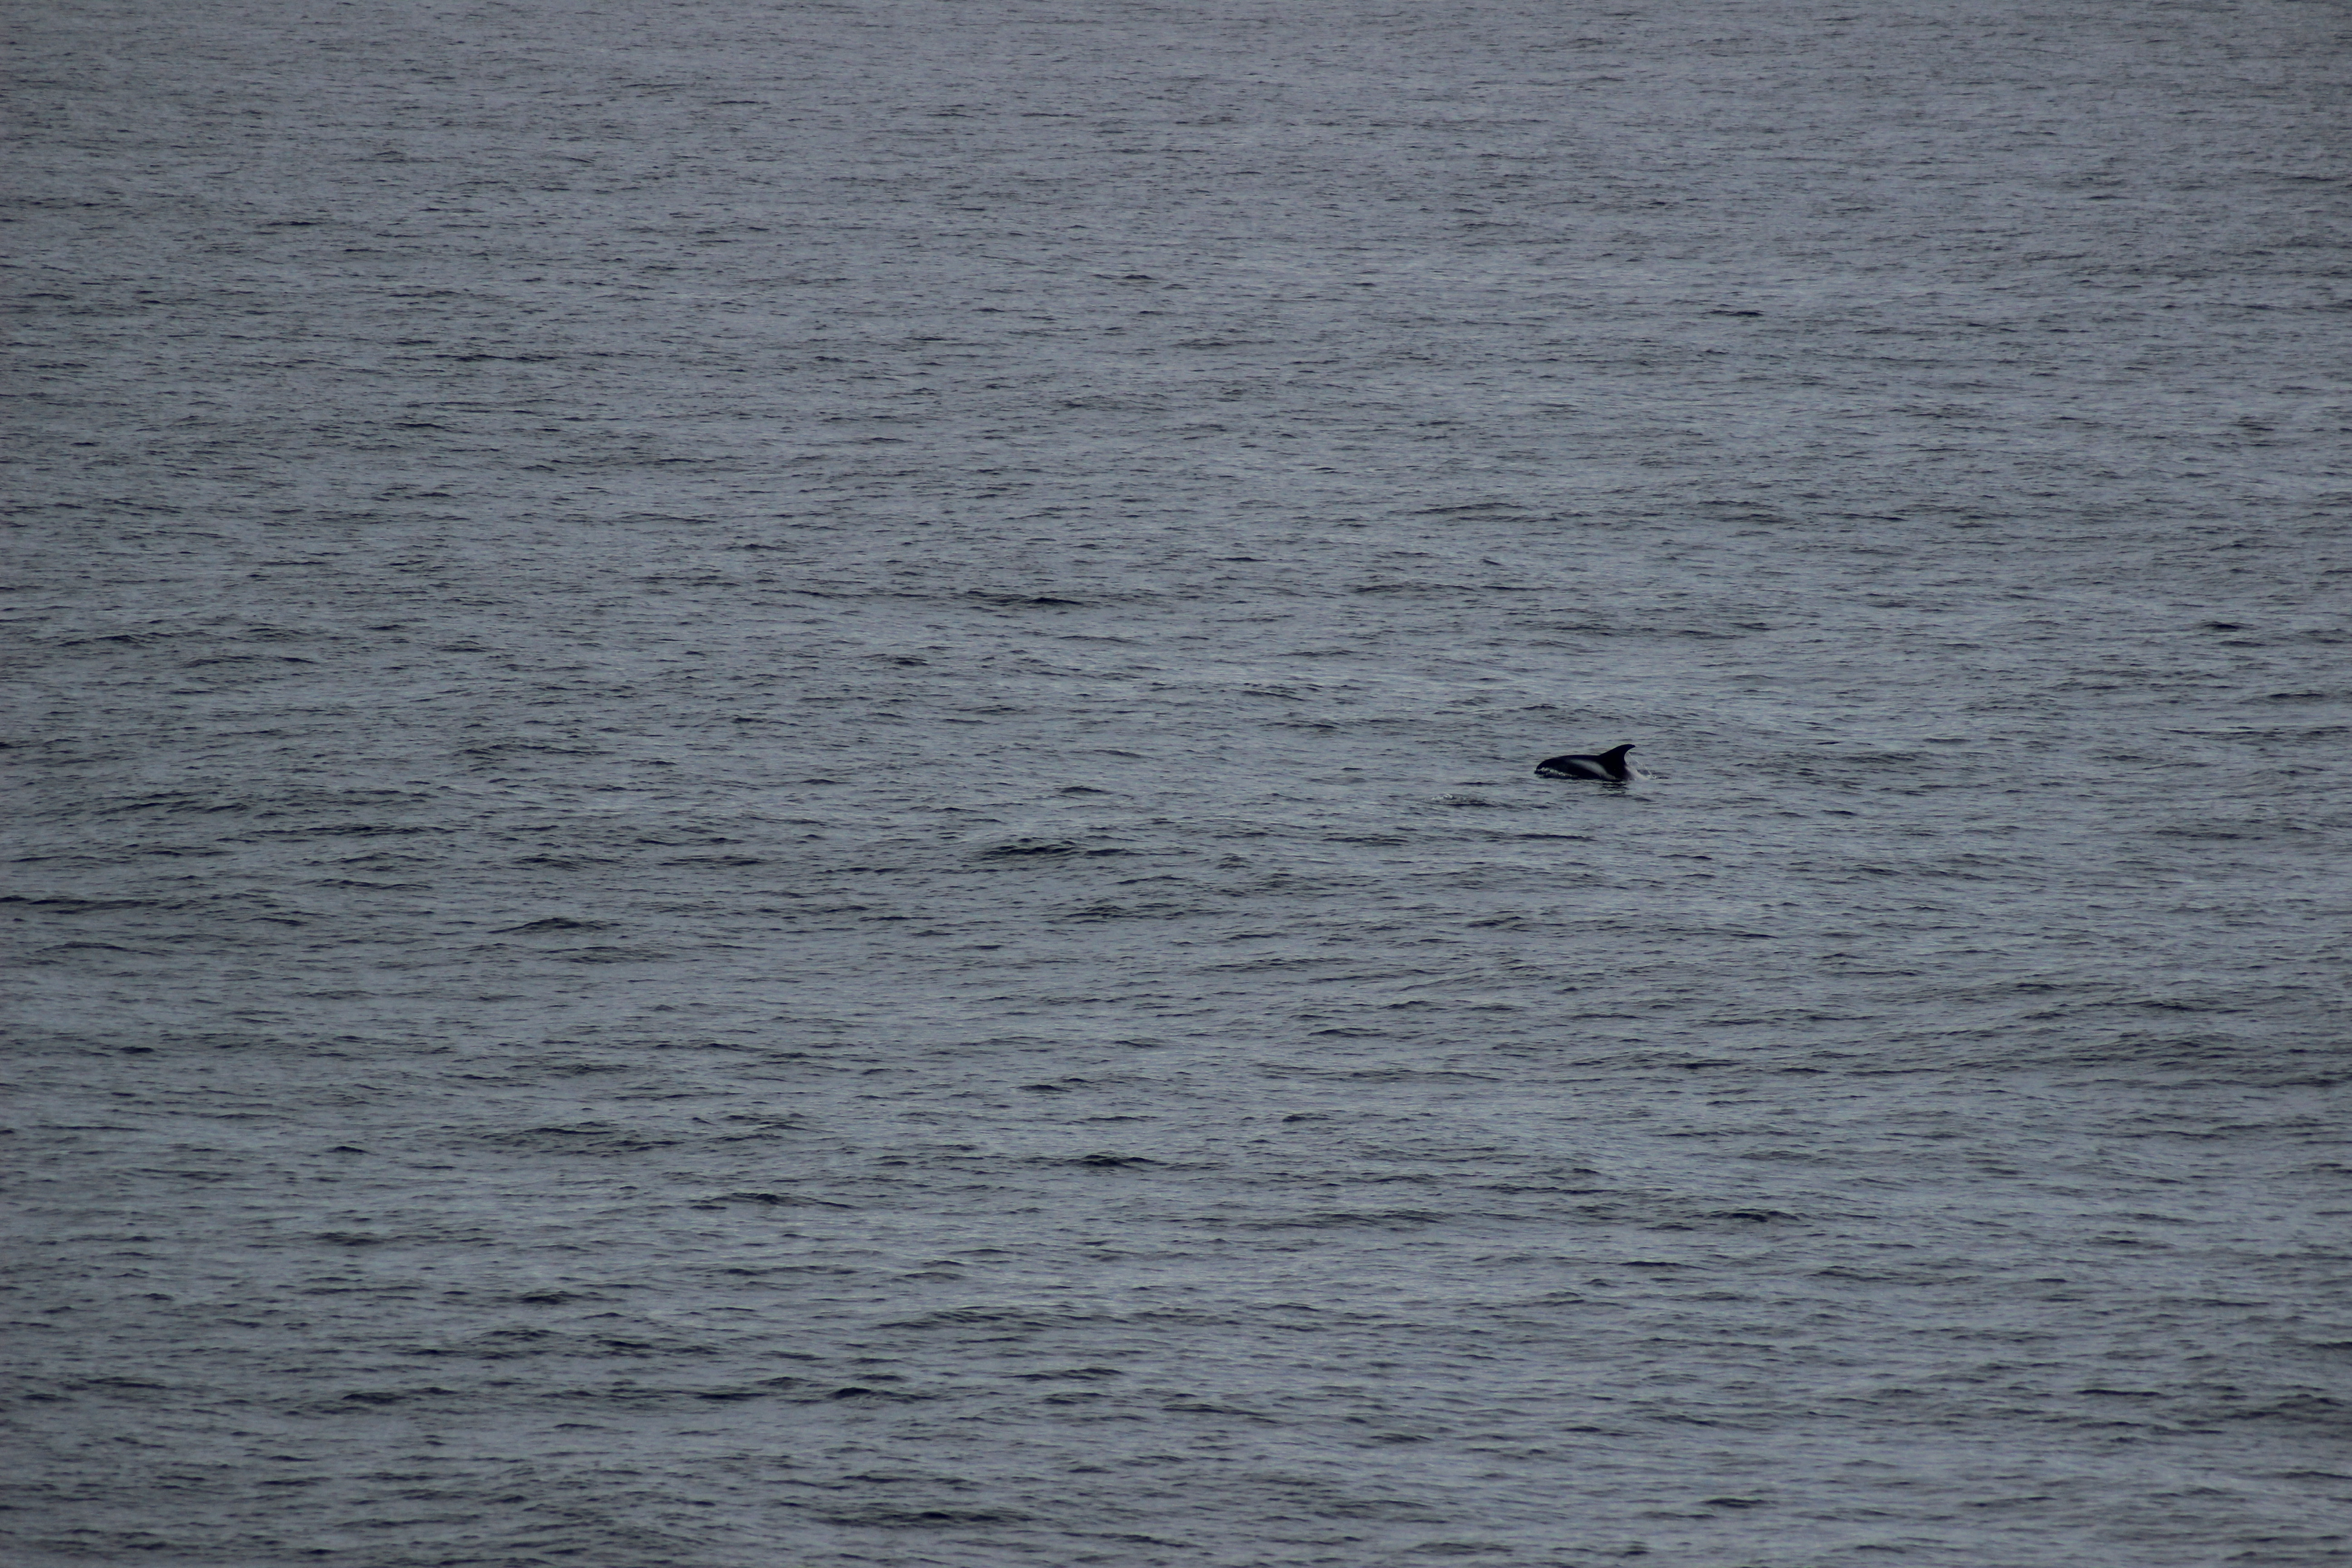 Harbour Porpoise and Minke Whales